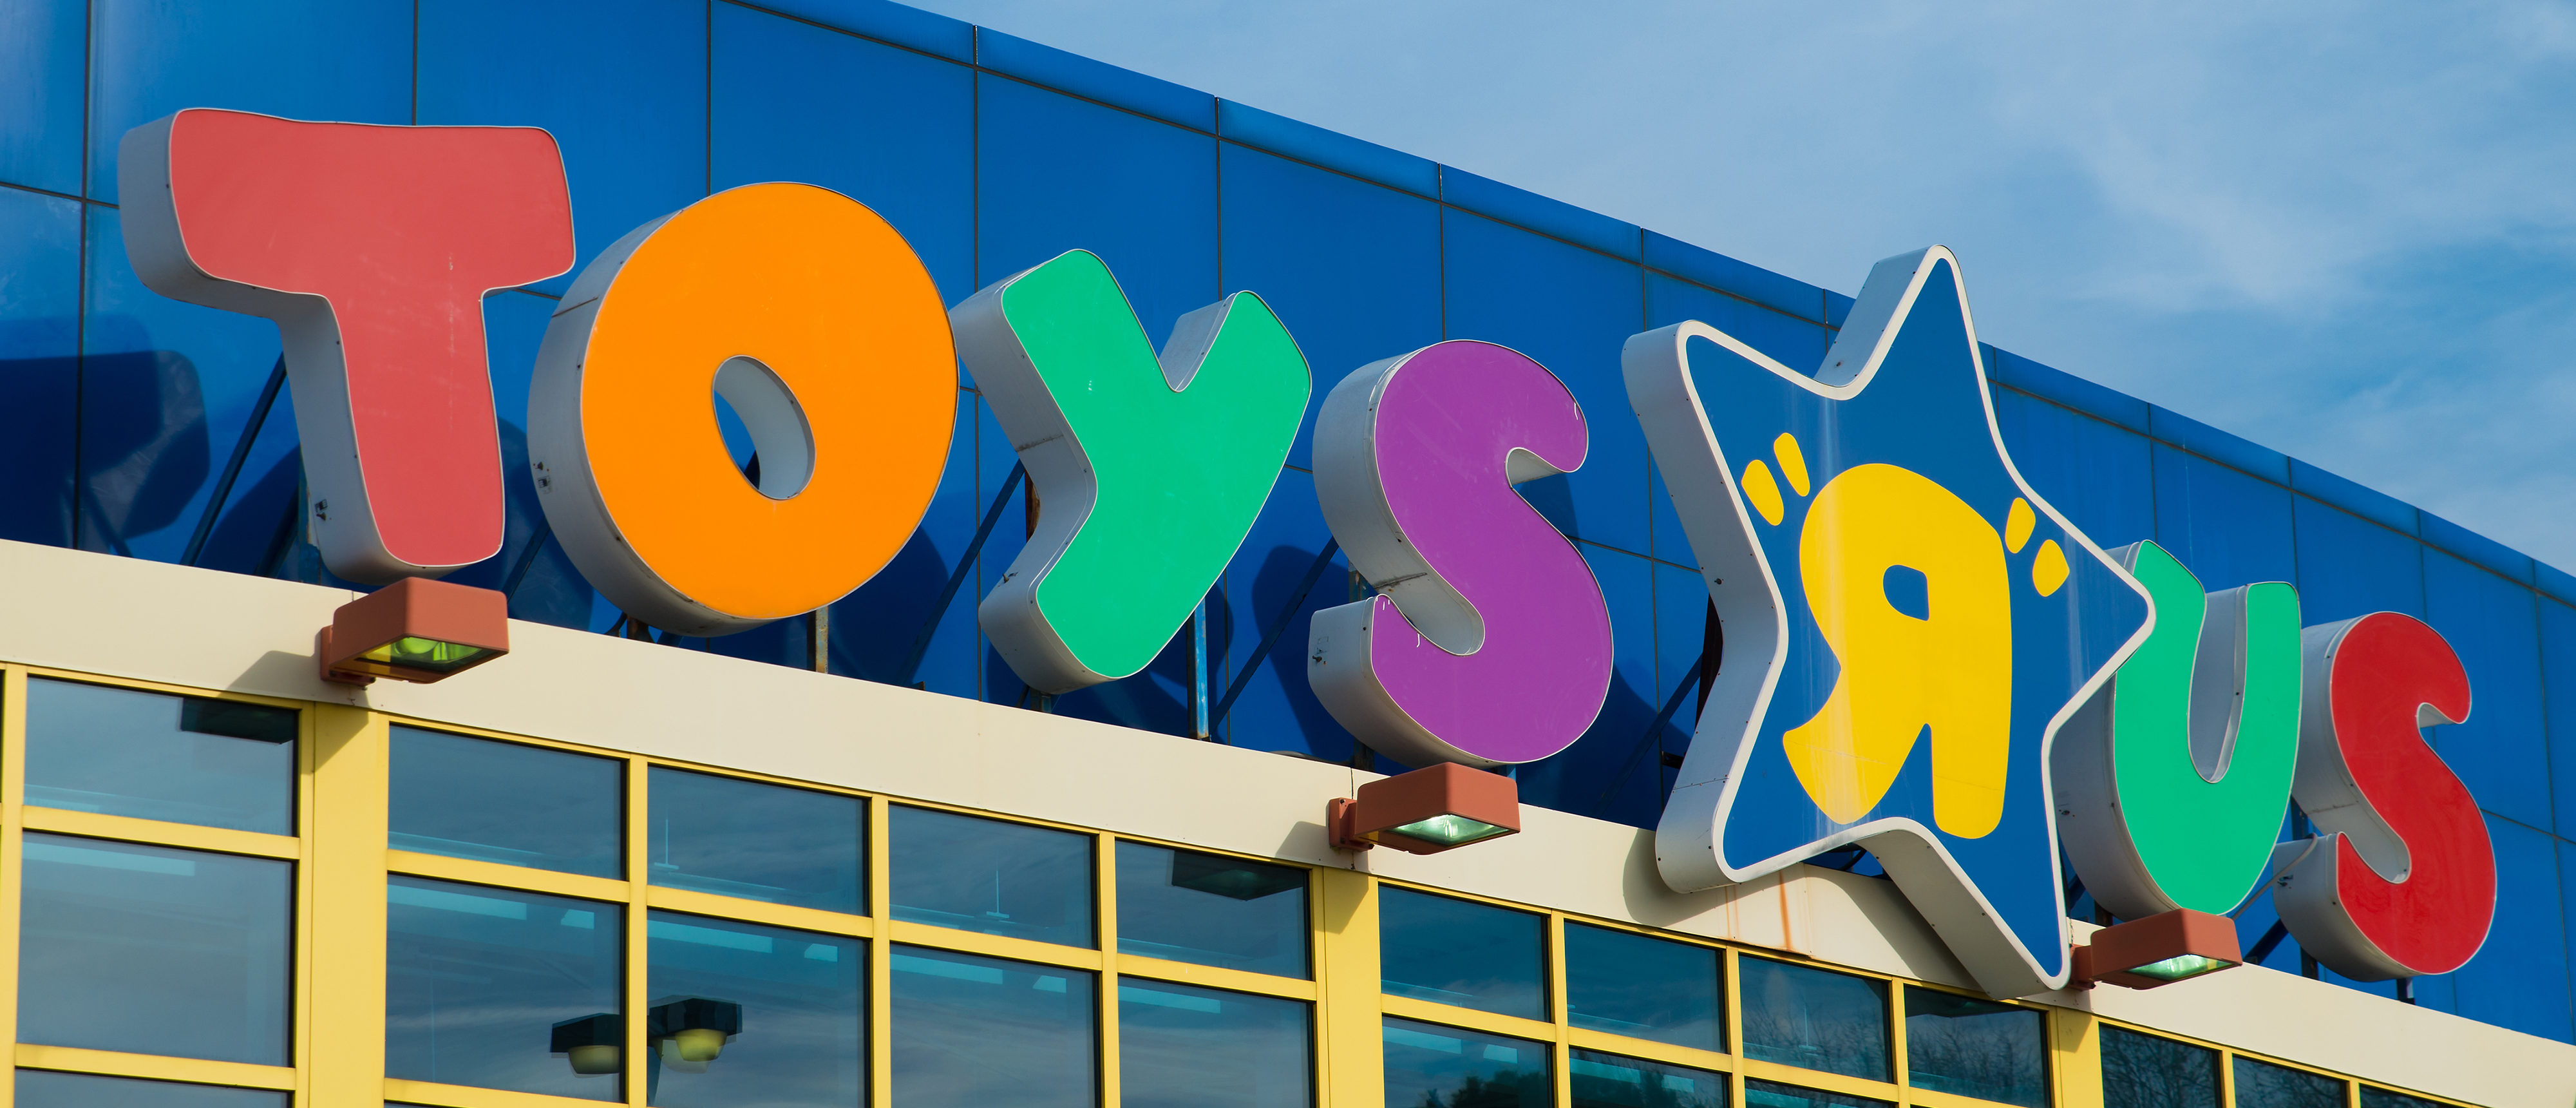 Toys 'R' Us (Shutterstock)